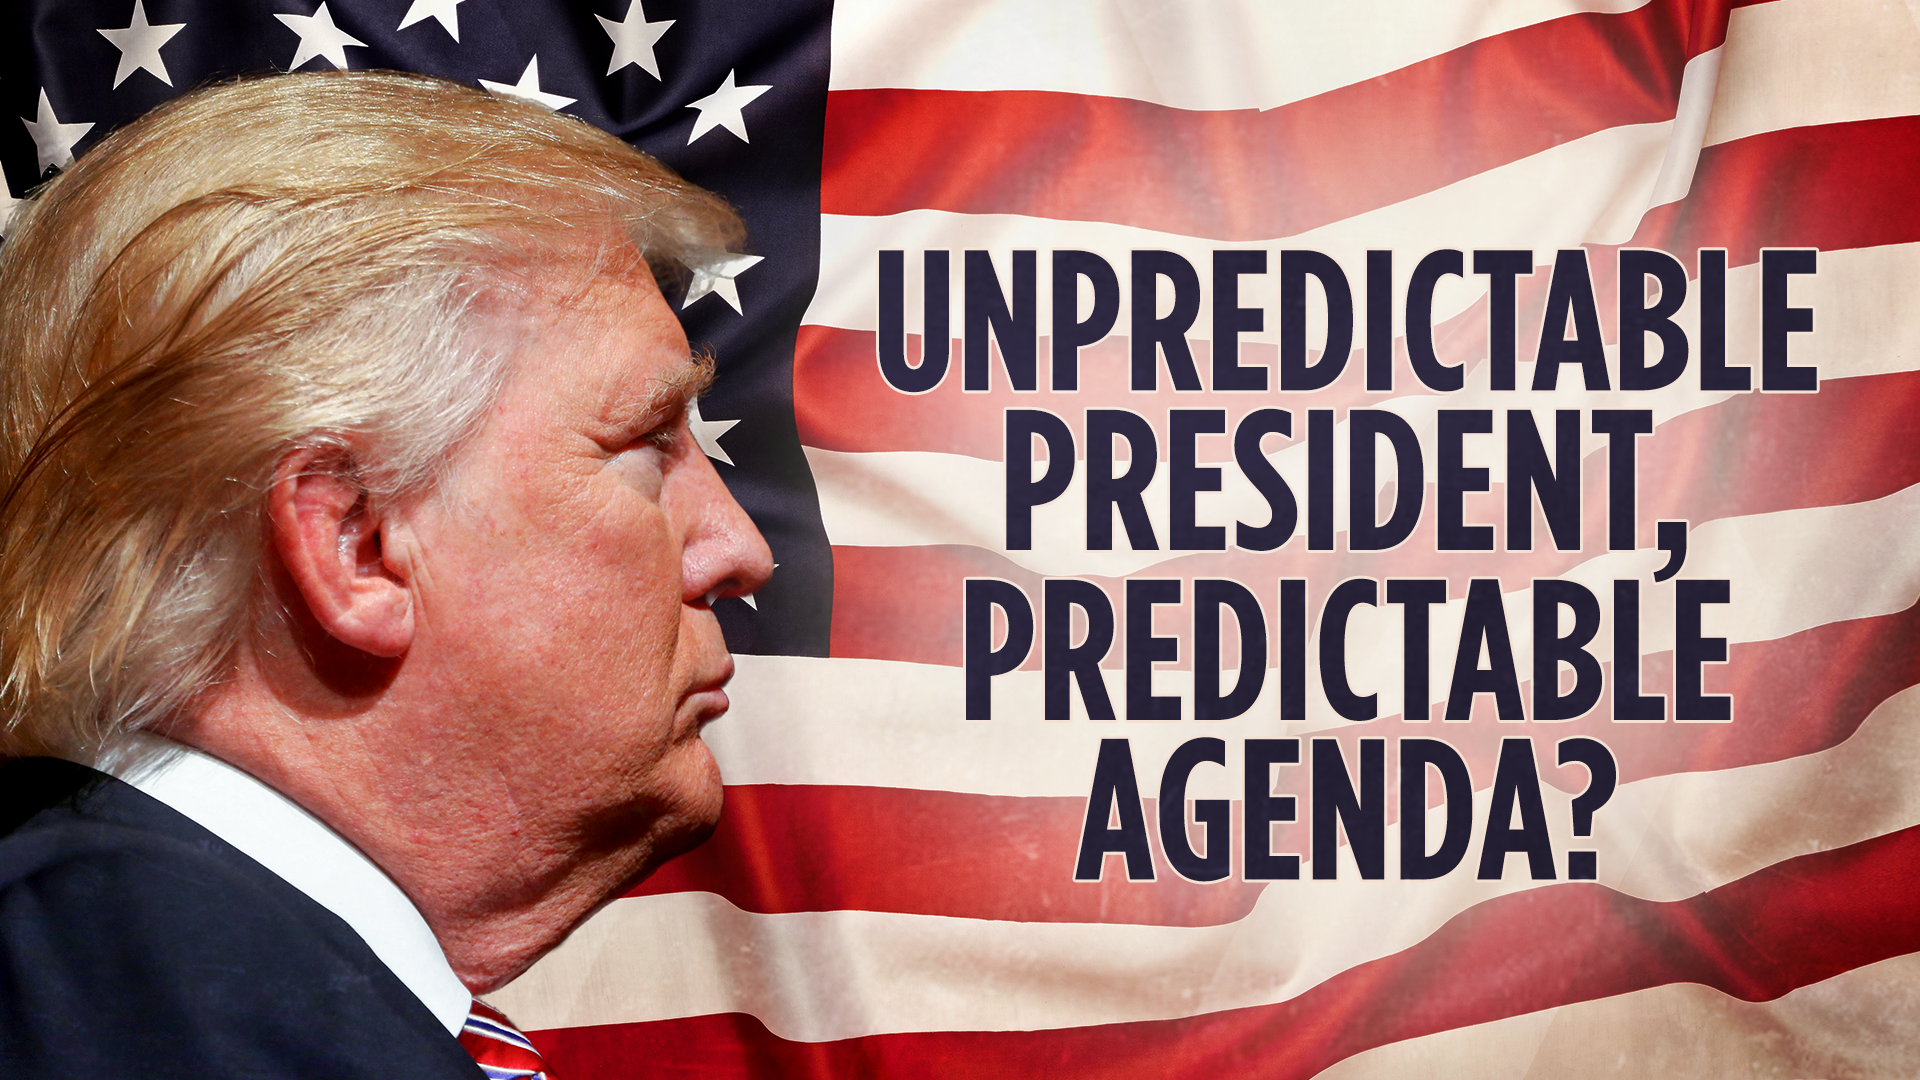 20677024_MM_MF_UNPREDICTABLE_PRESIDENT.png